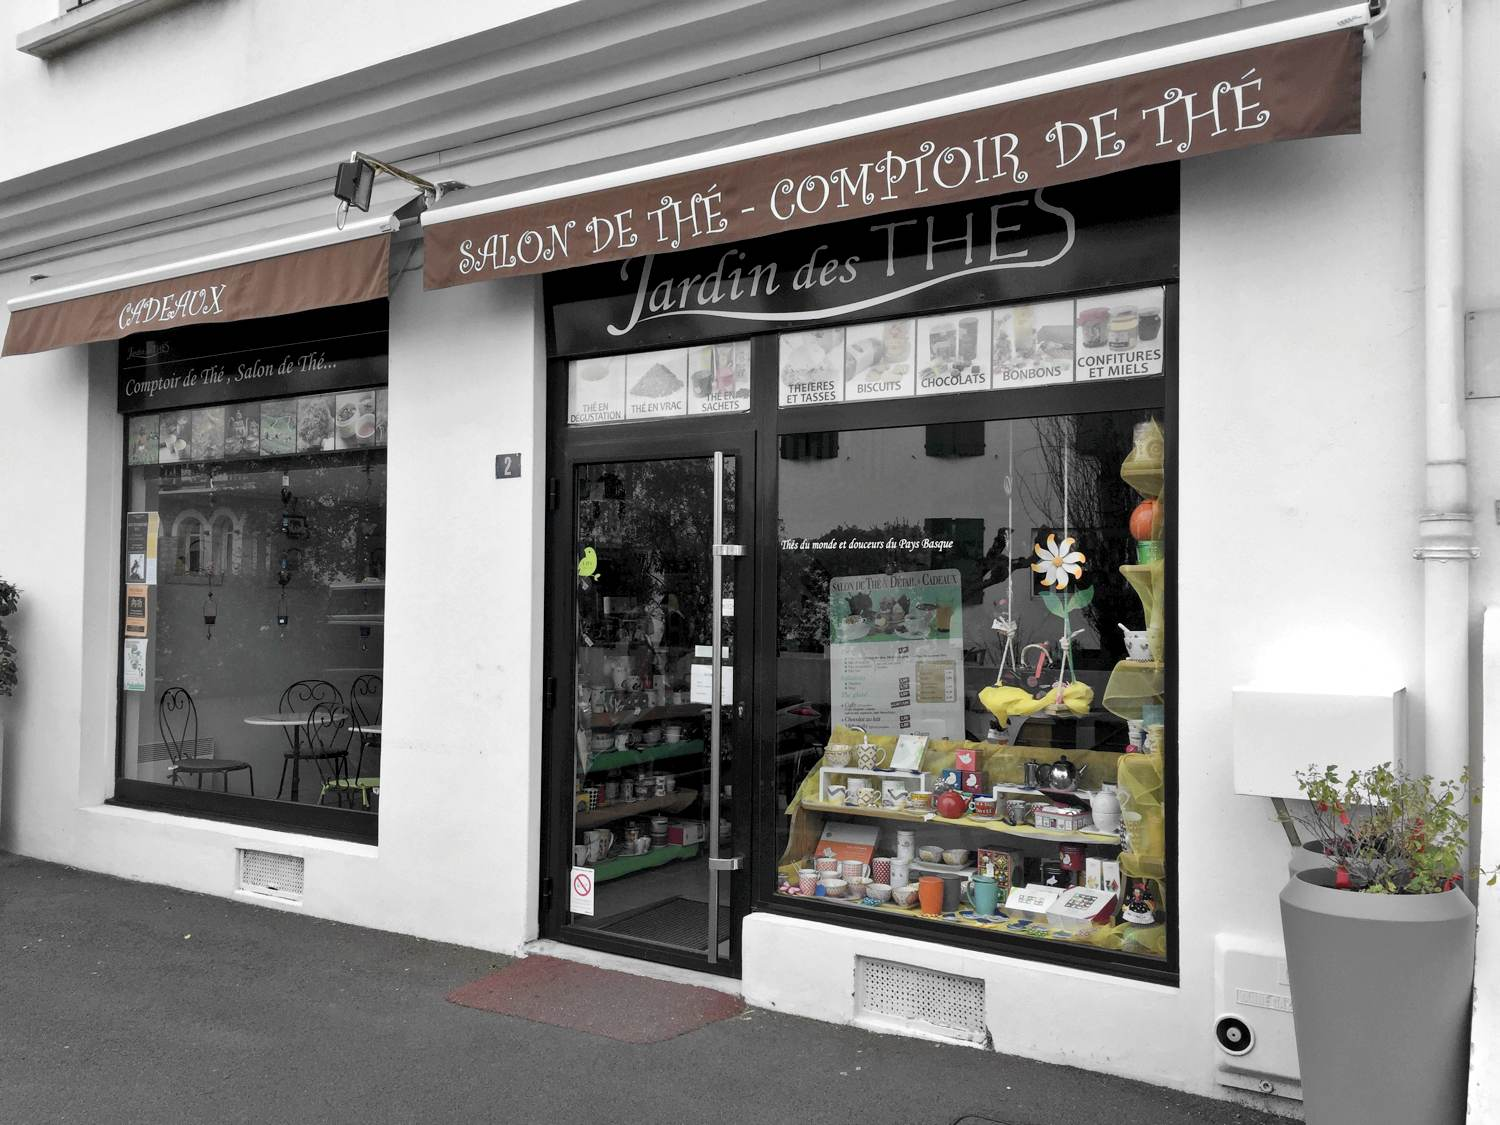 Salon et boutique de th s hendaye plage - Magasin de salon de jardin ...